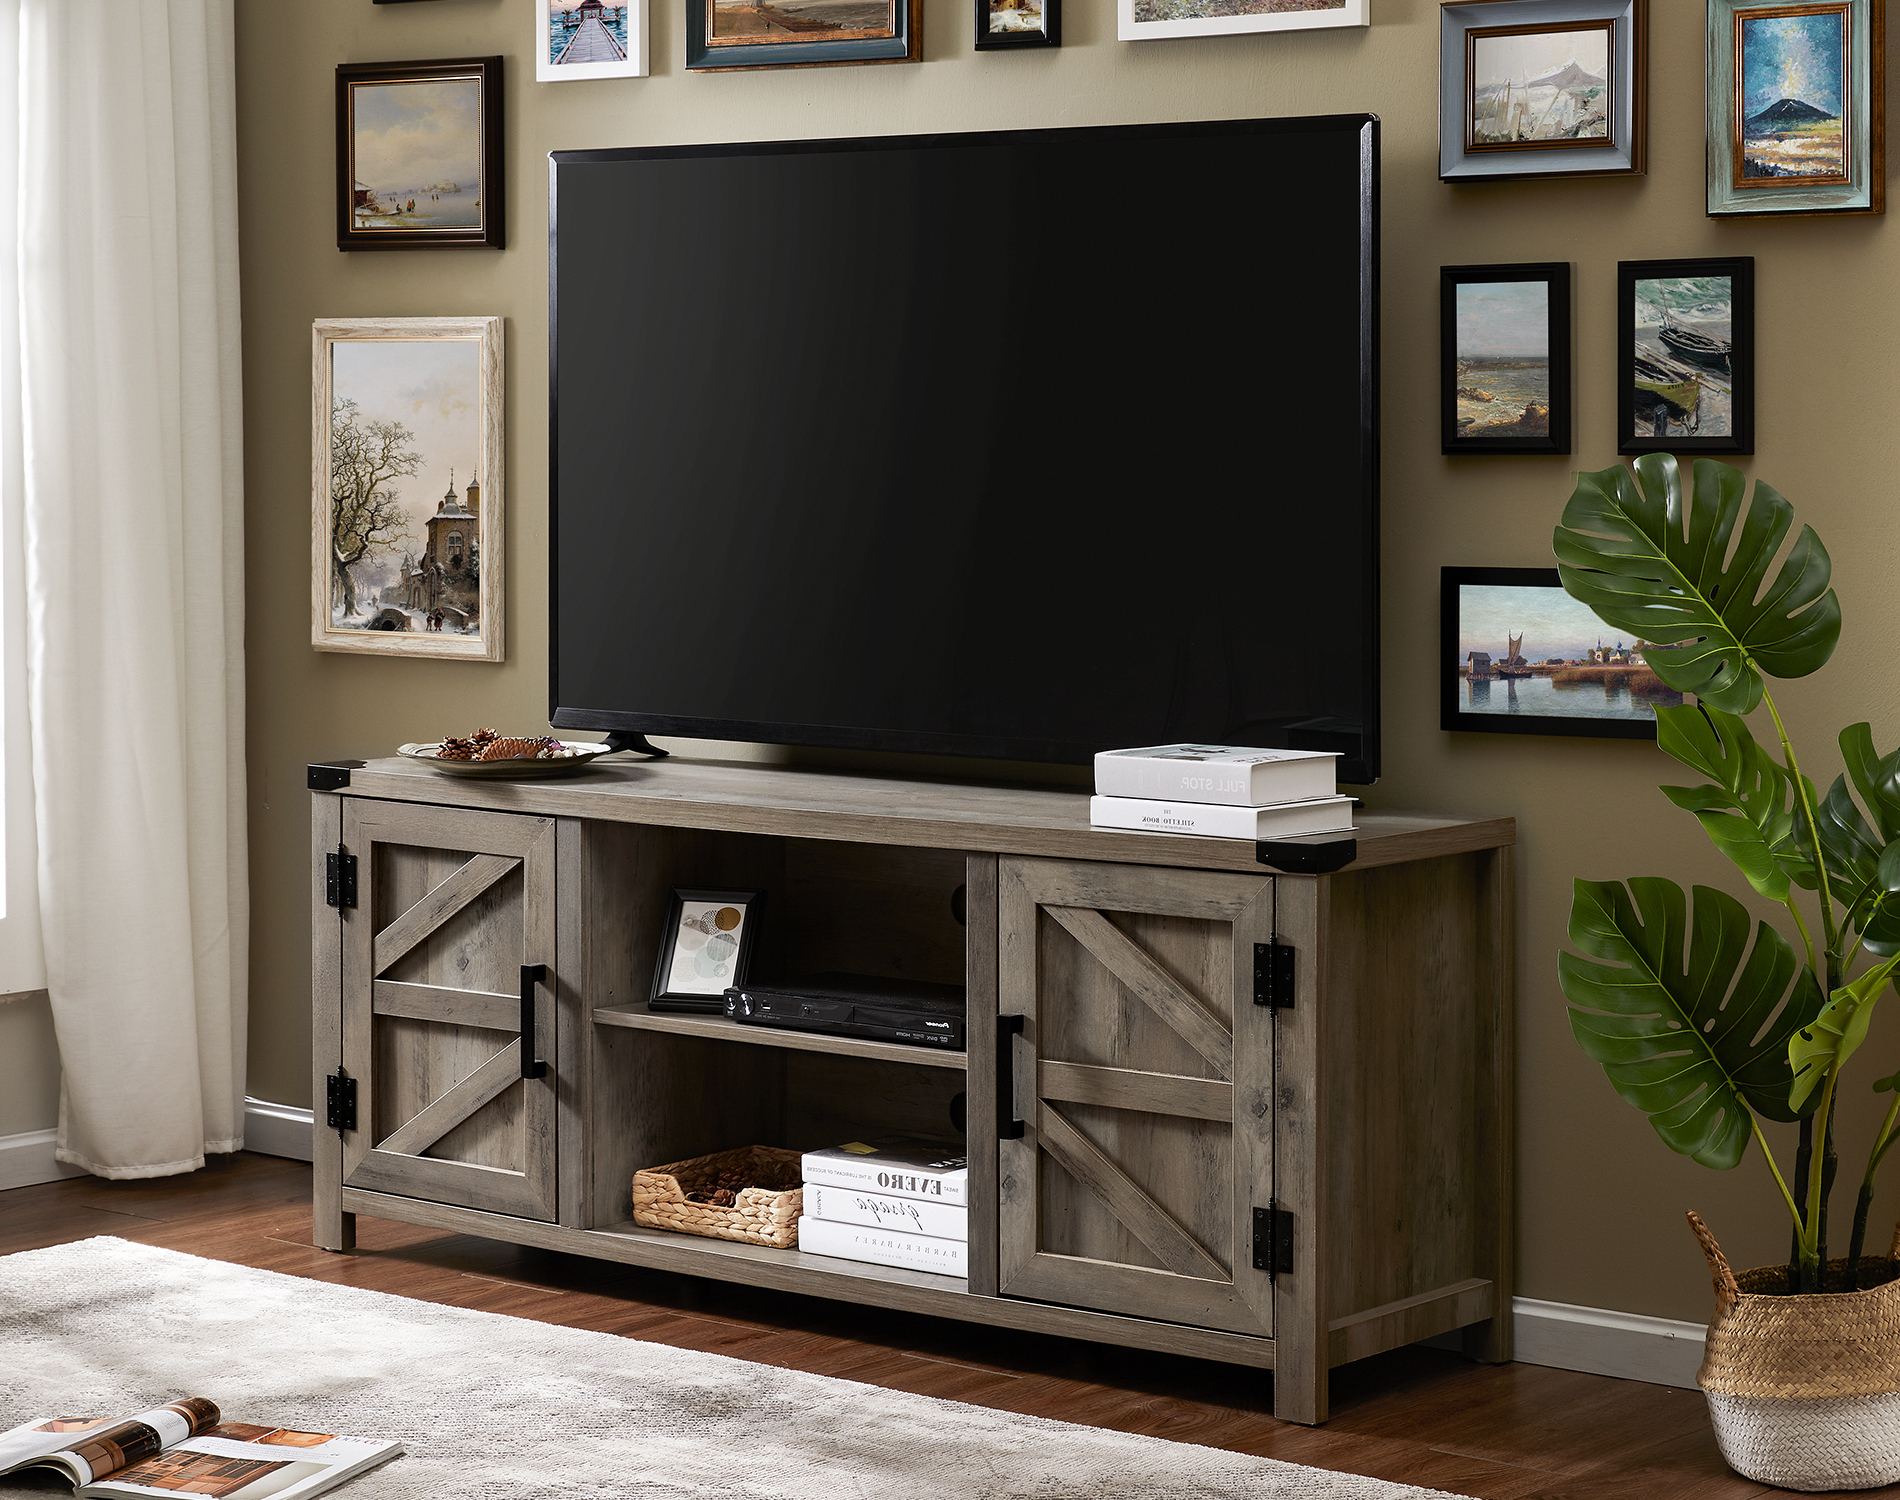 Most Popular Corona Grey Flat Screen Tv Unit Stands With Regard To Fitueyes Farmhouse Barn Door Wood Tv Stands For 70 Inch (View 3 of 10)